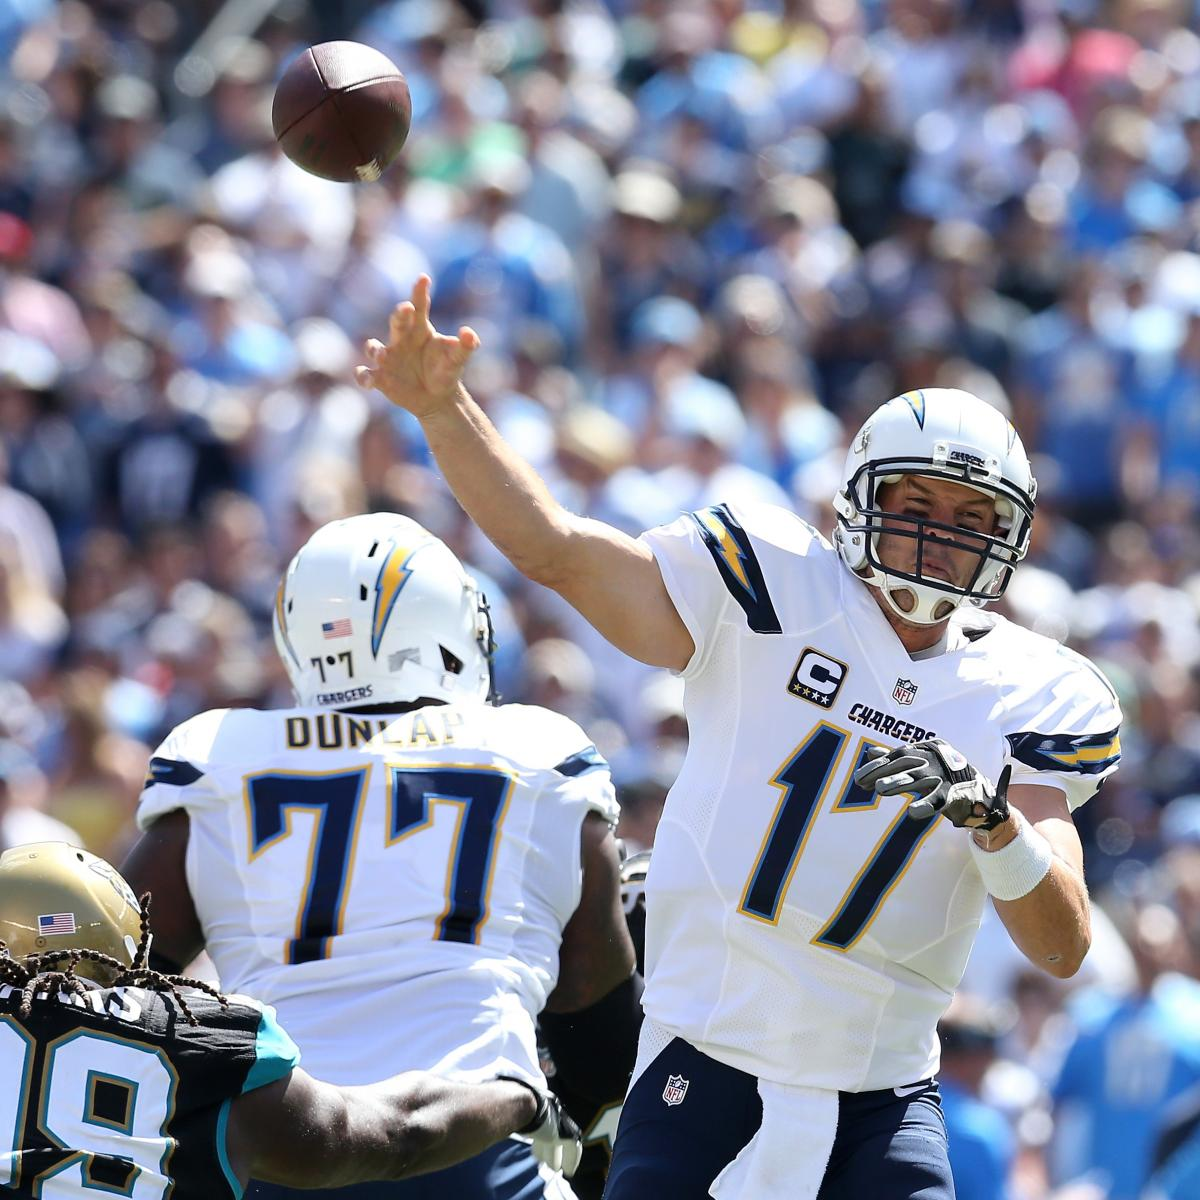 San Diego Chargers Current Score: Jacksonville Jaguars Vs. San Diego Chargers: Live Score